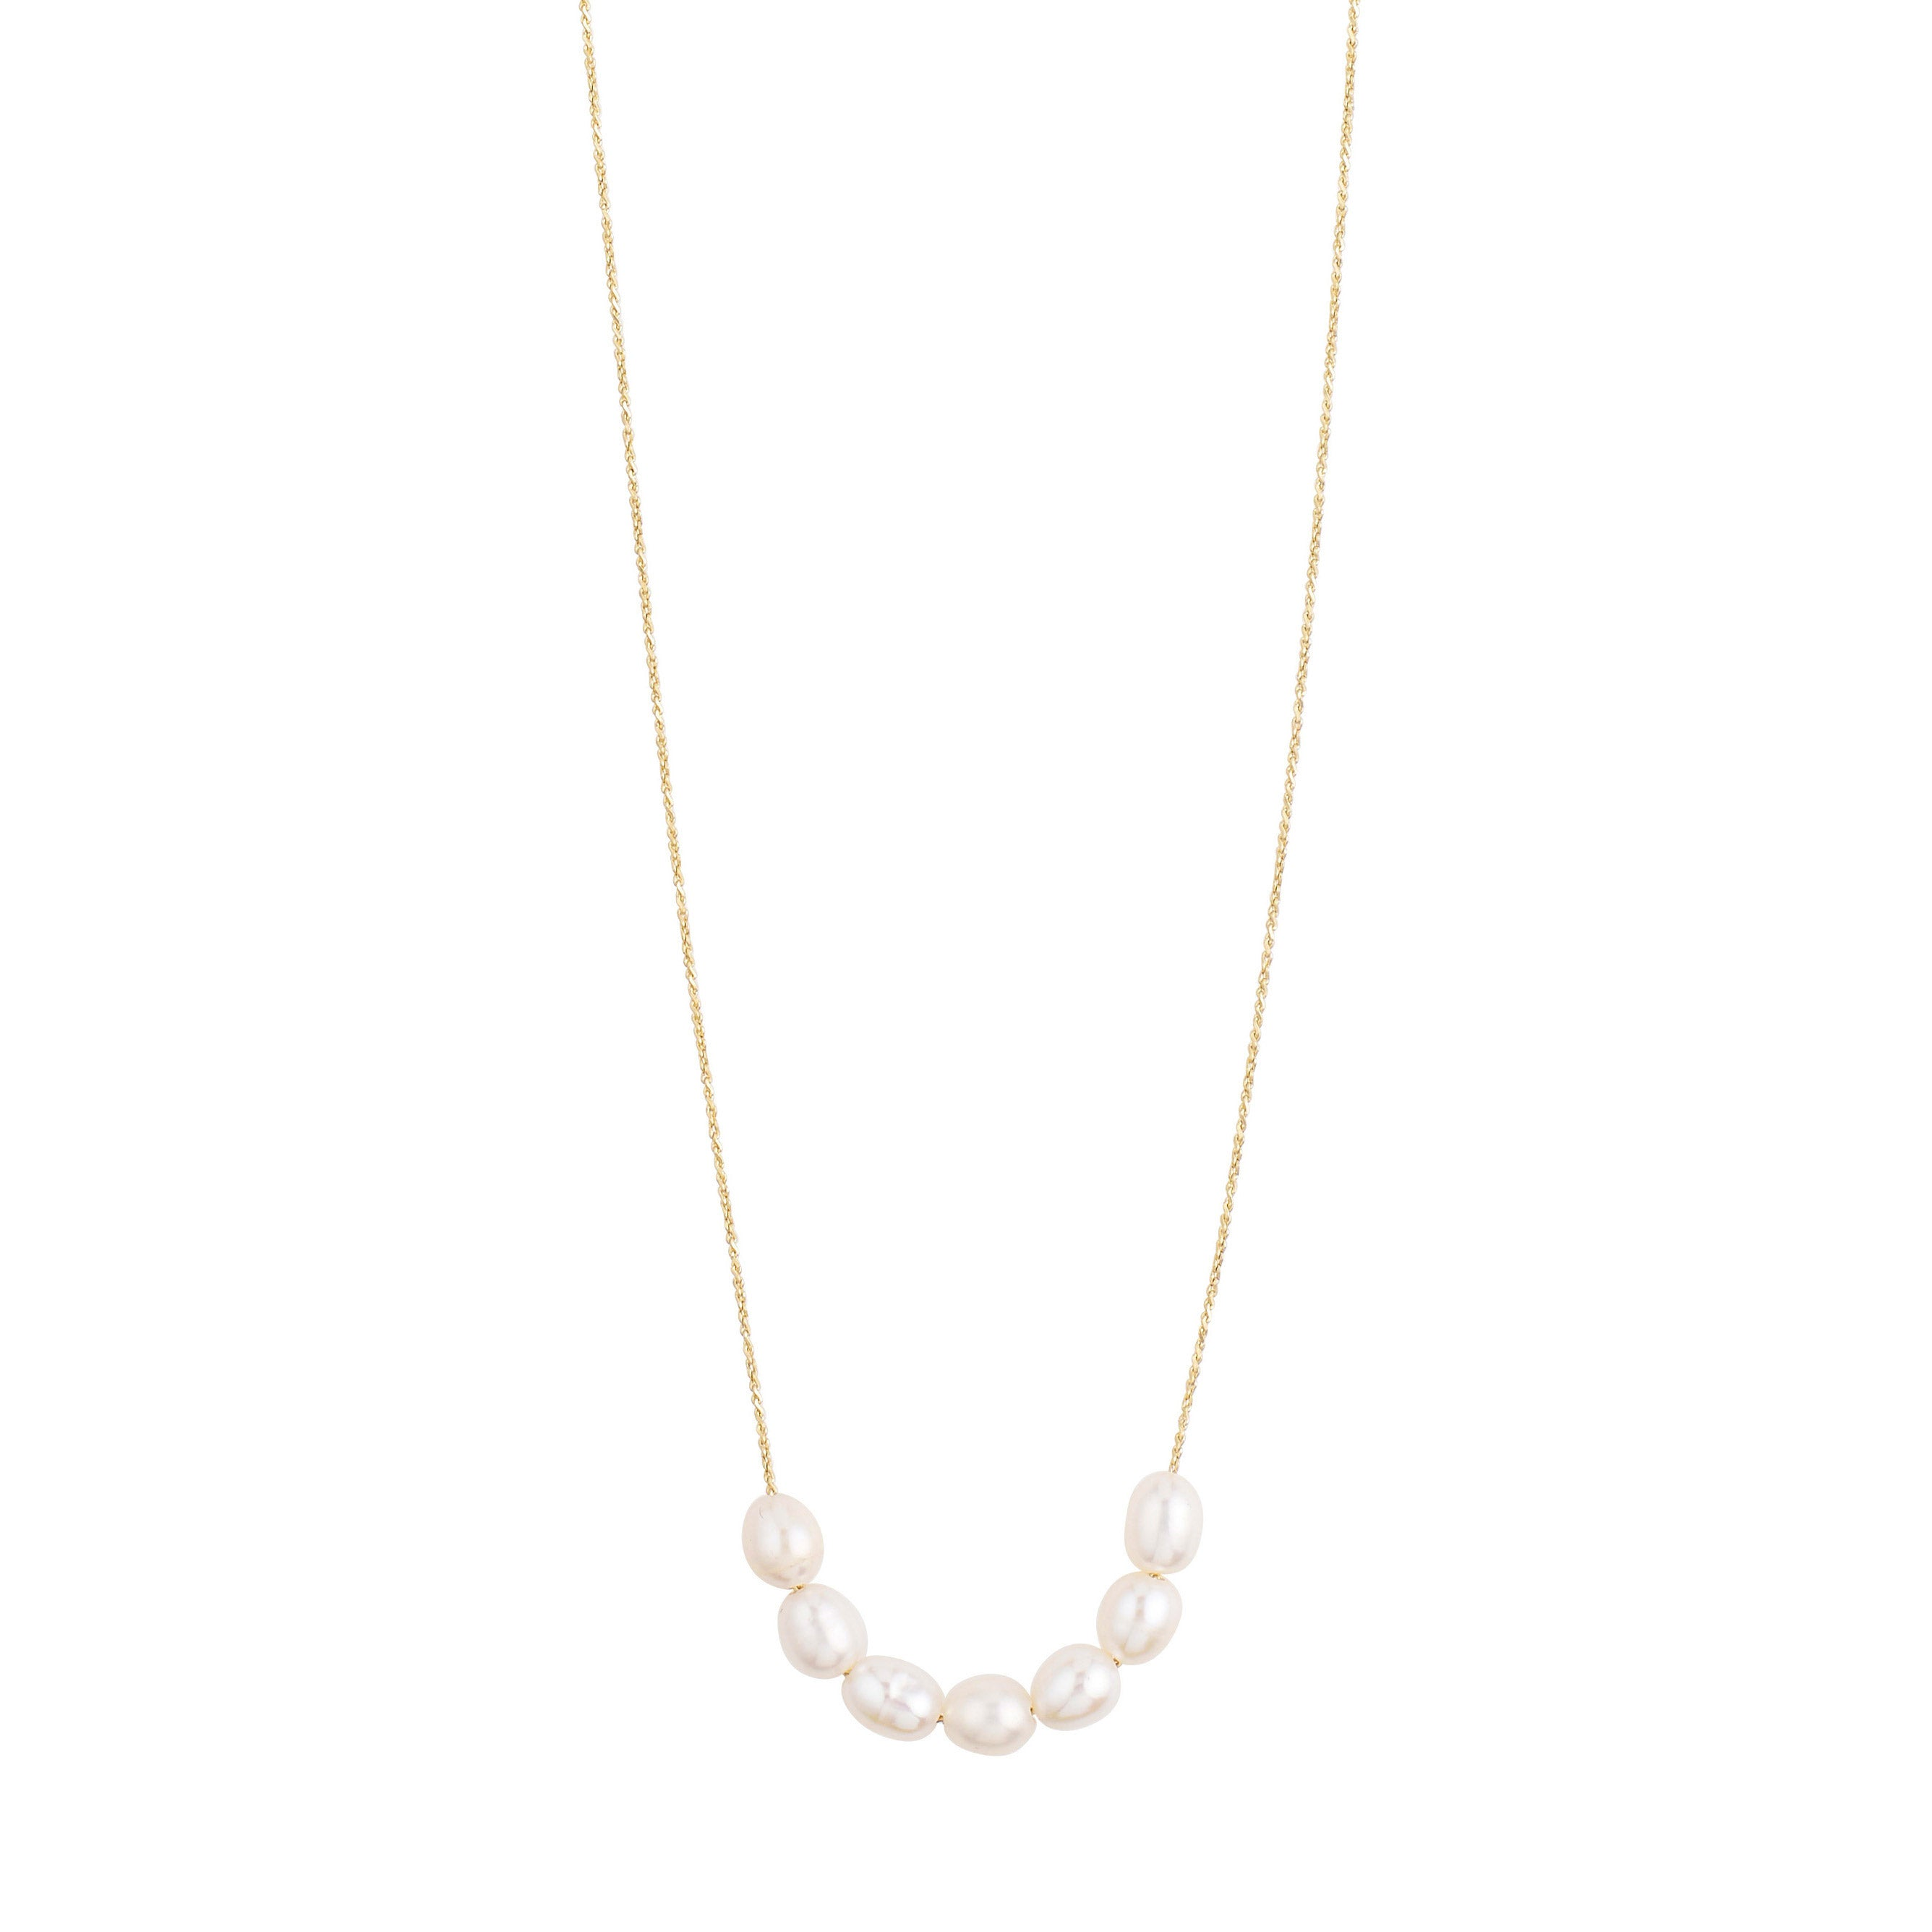 Necklace : Chloe : Gold Plated : White